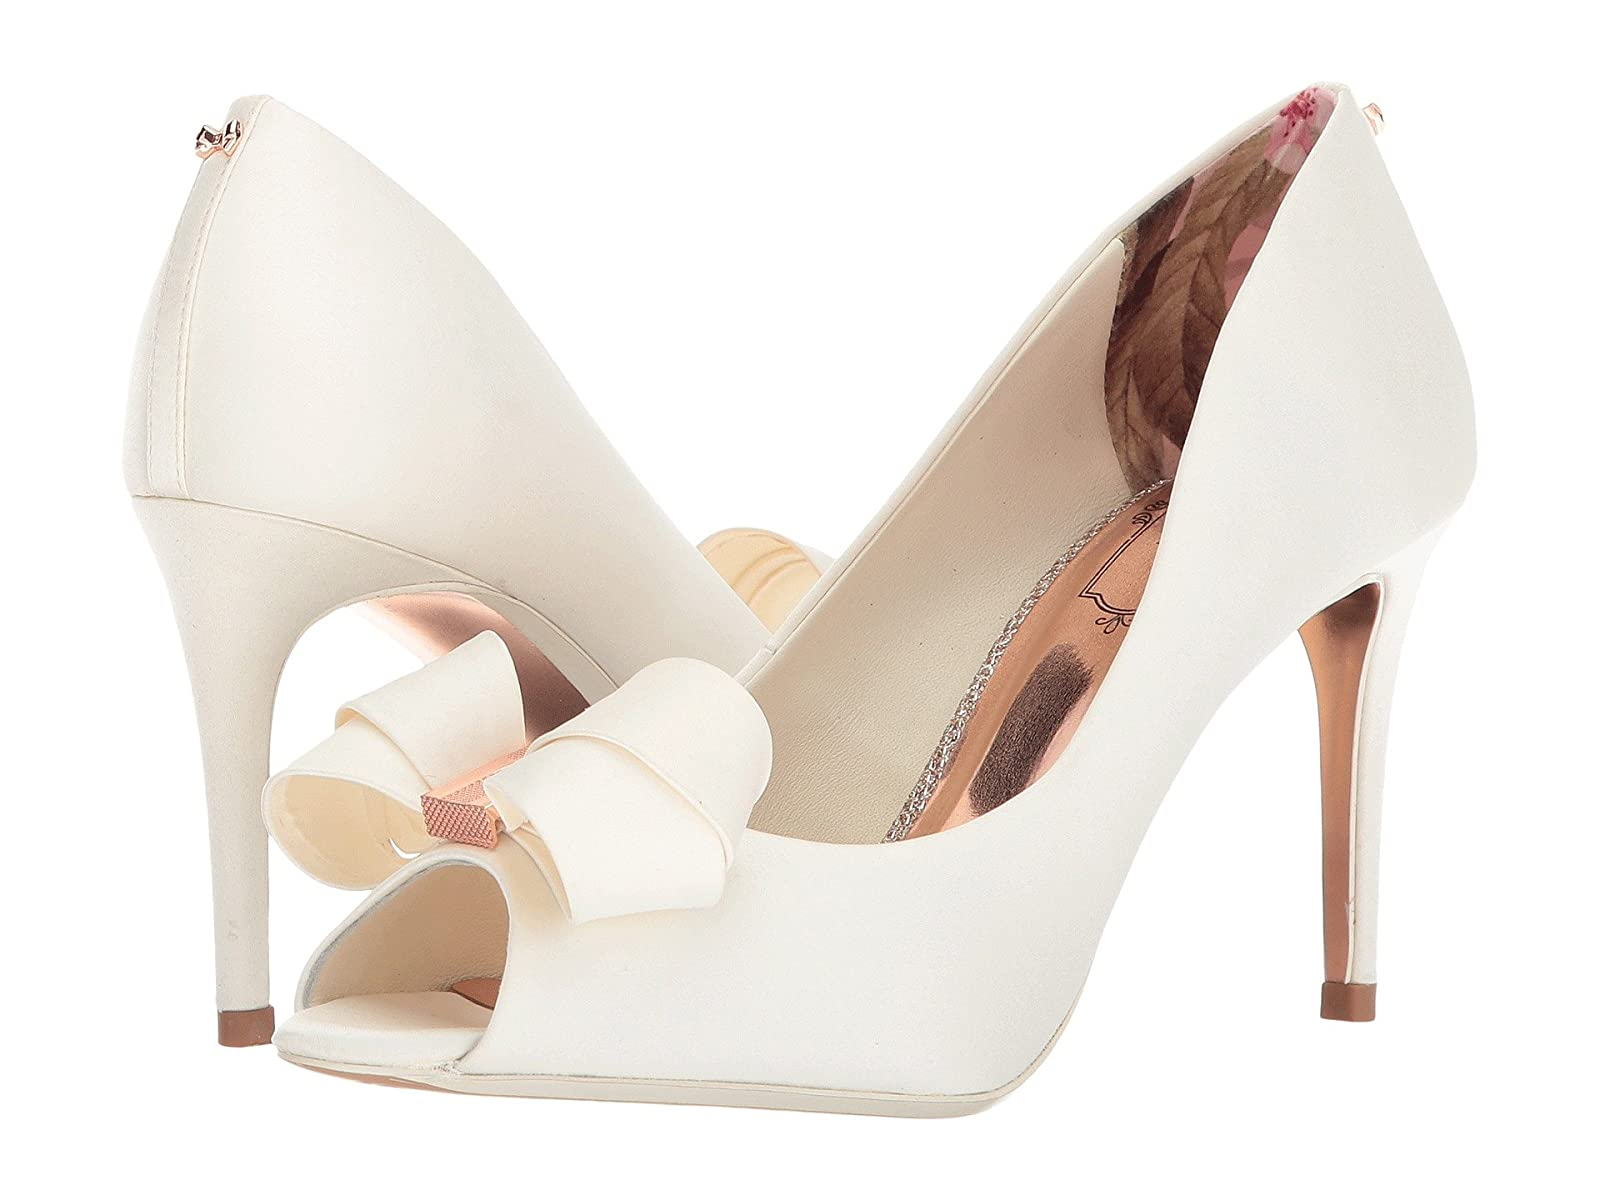 Ted Baker VylettCheap and distinctive eye-catching shoes